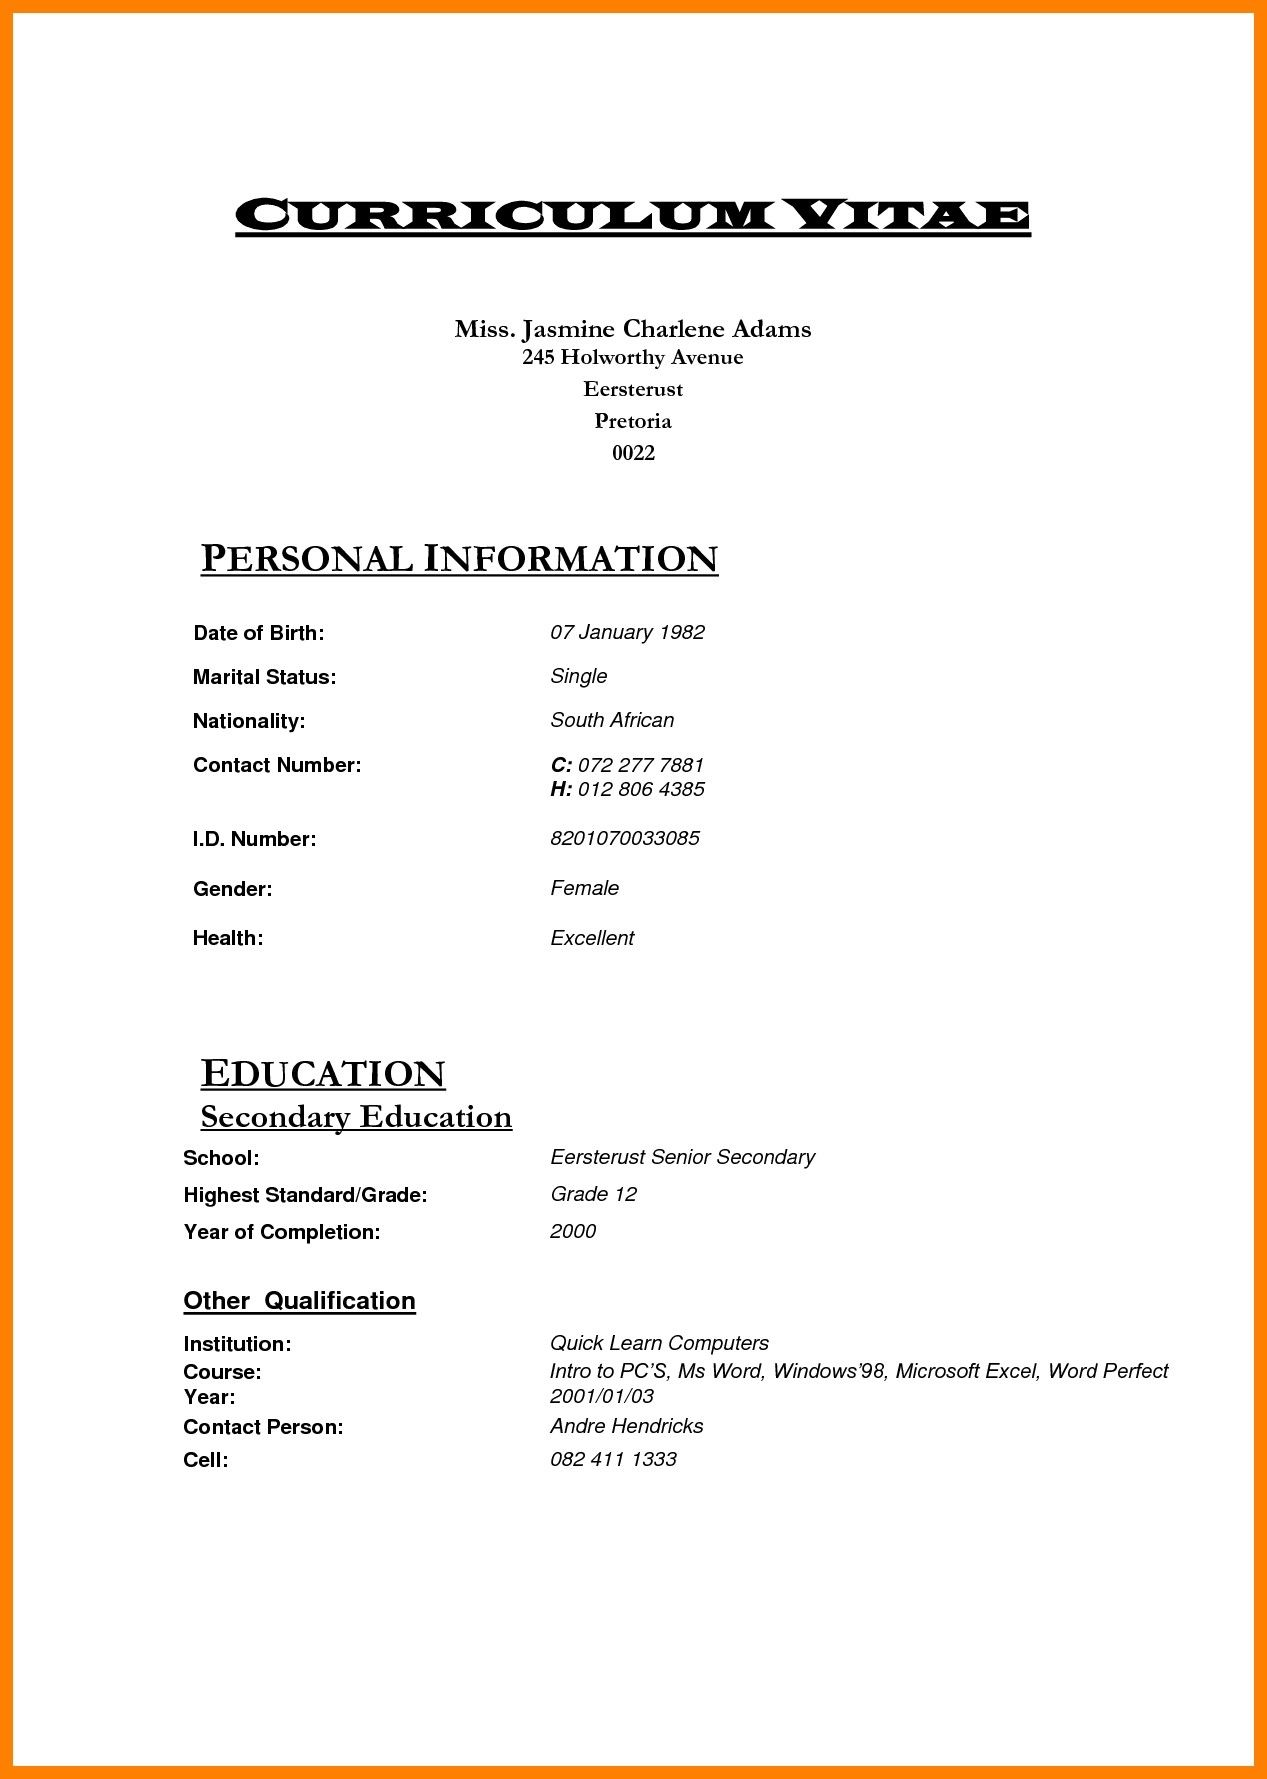 Cv Template Za Bio data for marriage, Cv template, Bio data